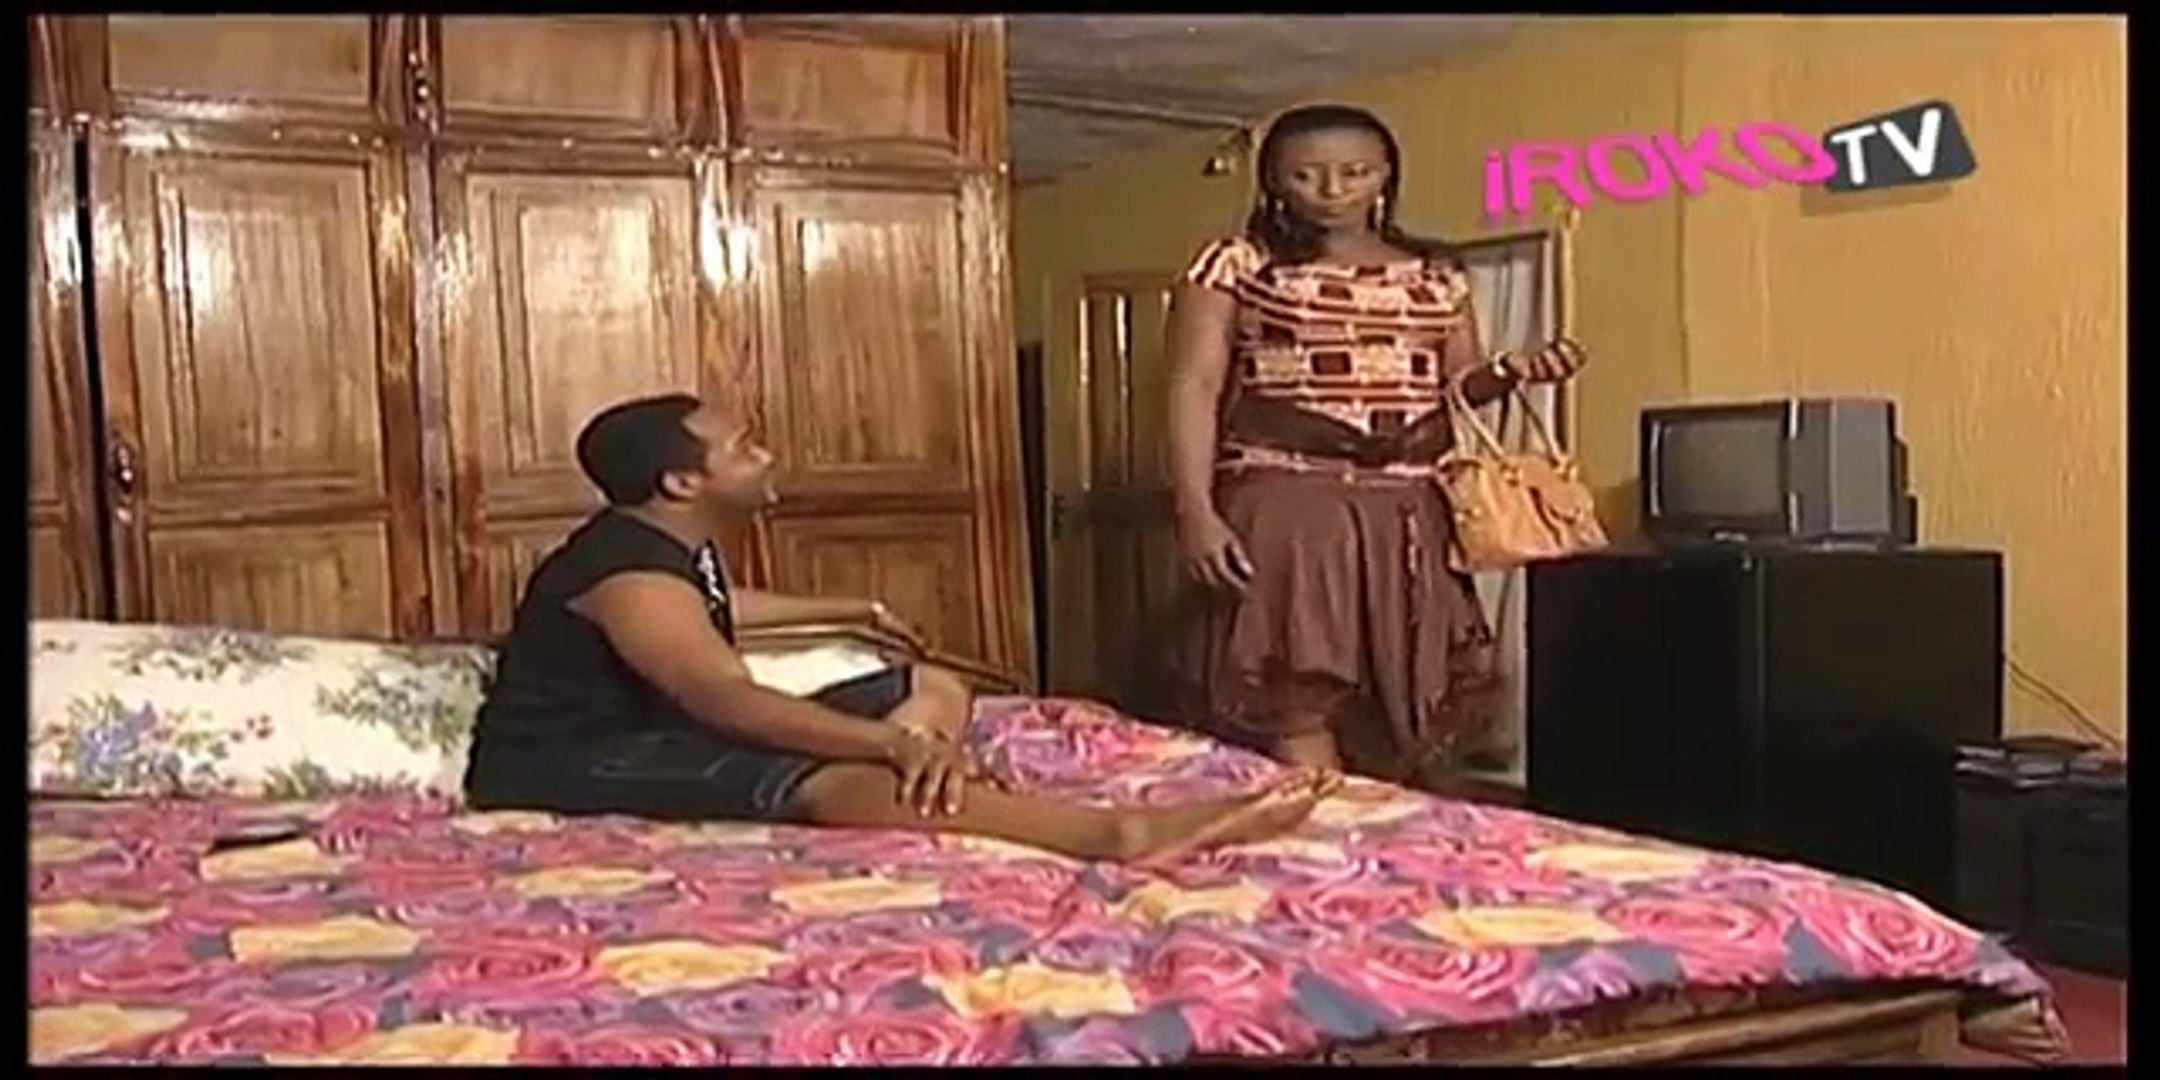 Ini Edo Excapes Nonso Diobi's Evil Plan - Nigerian Movie